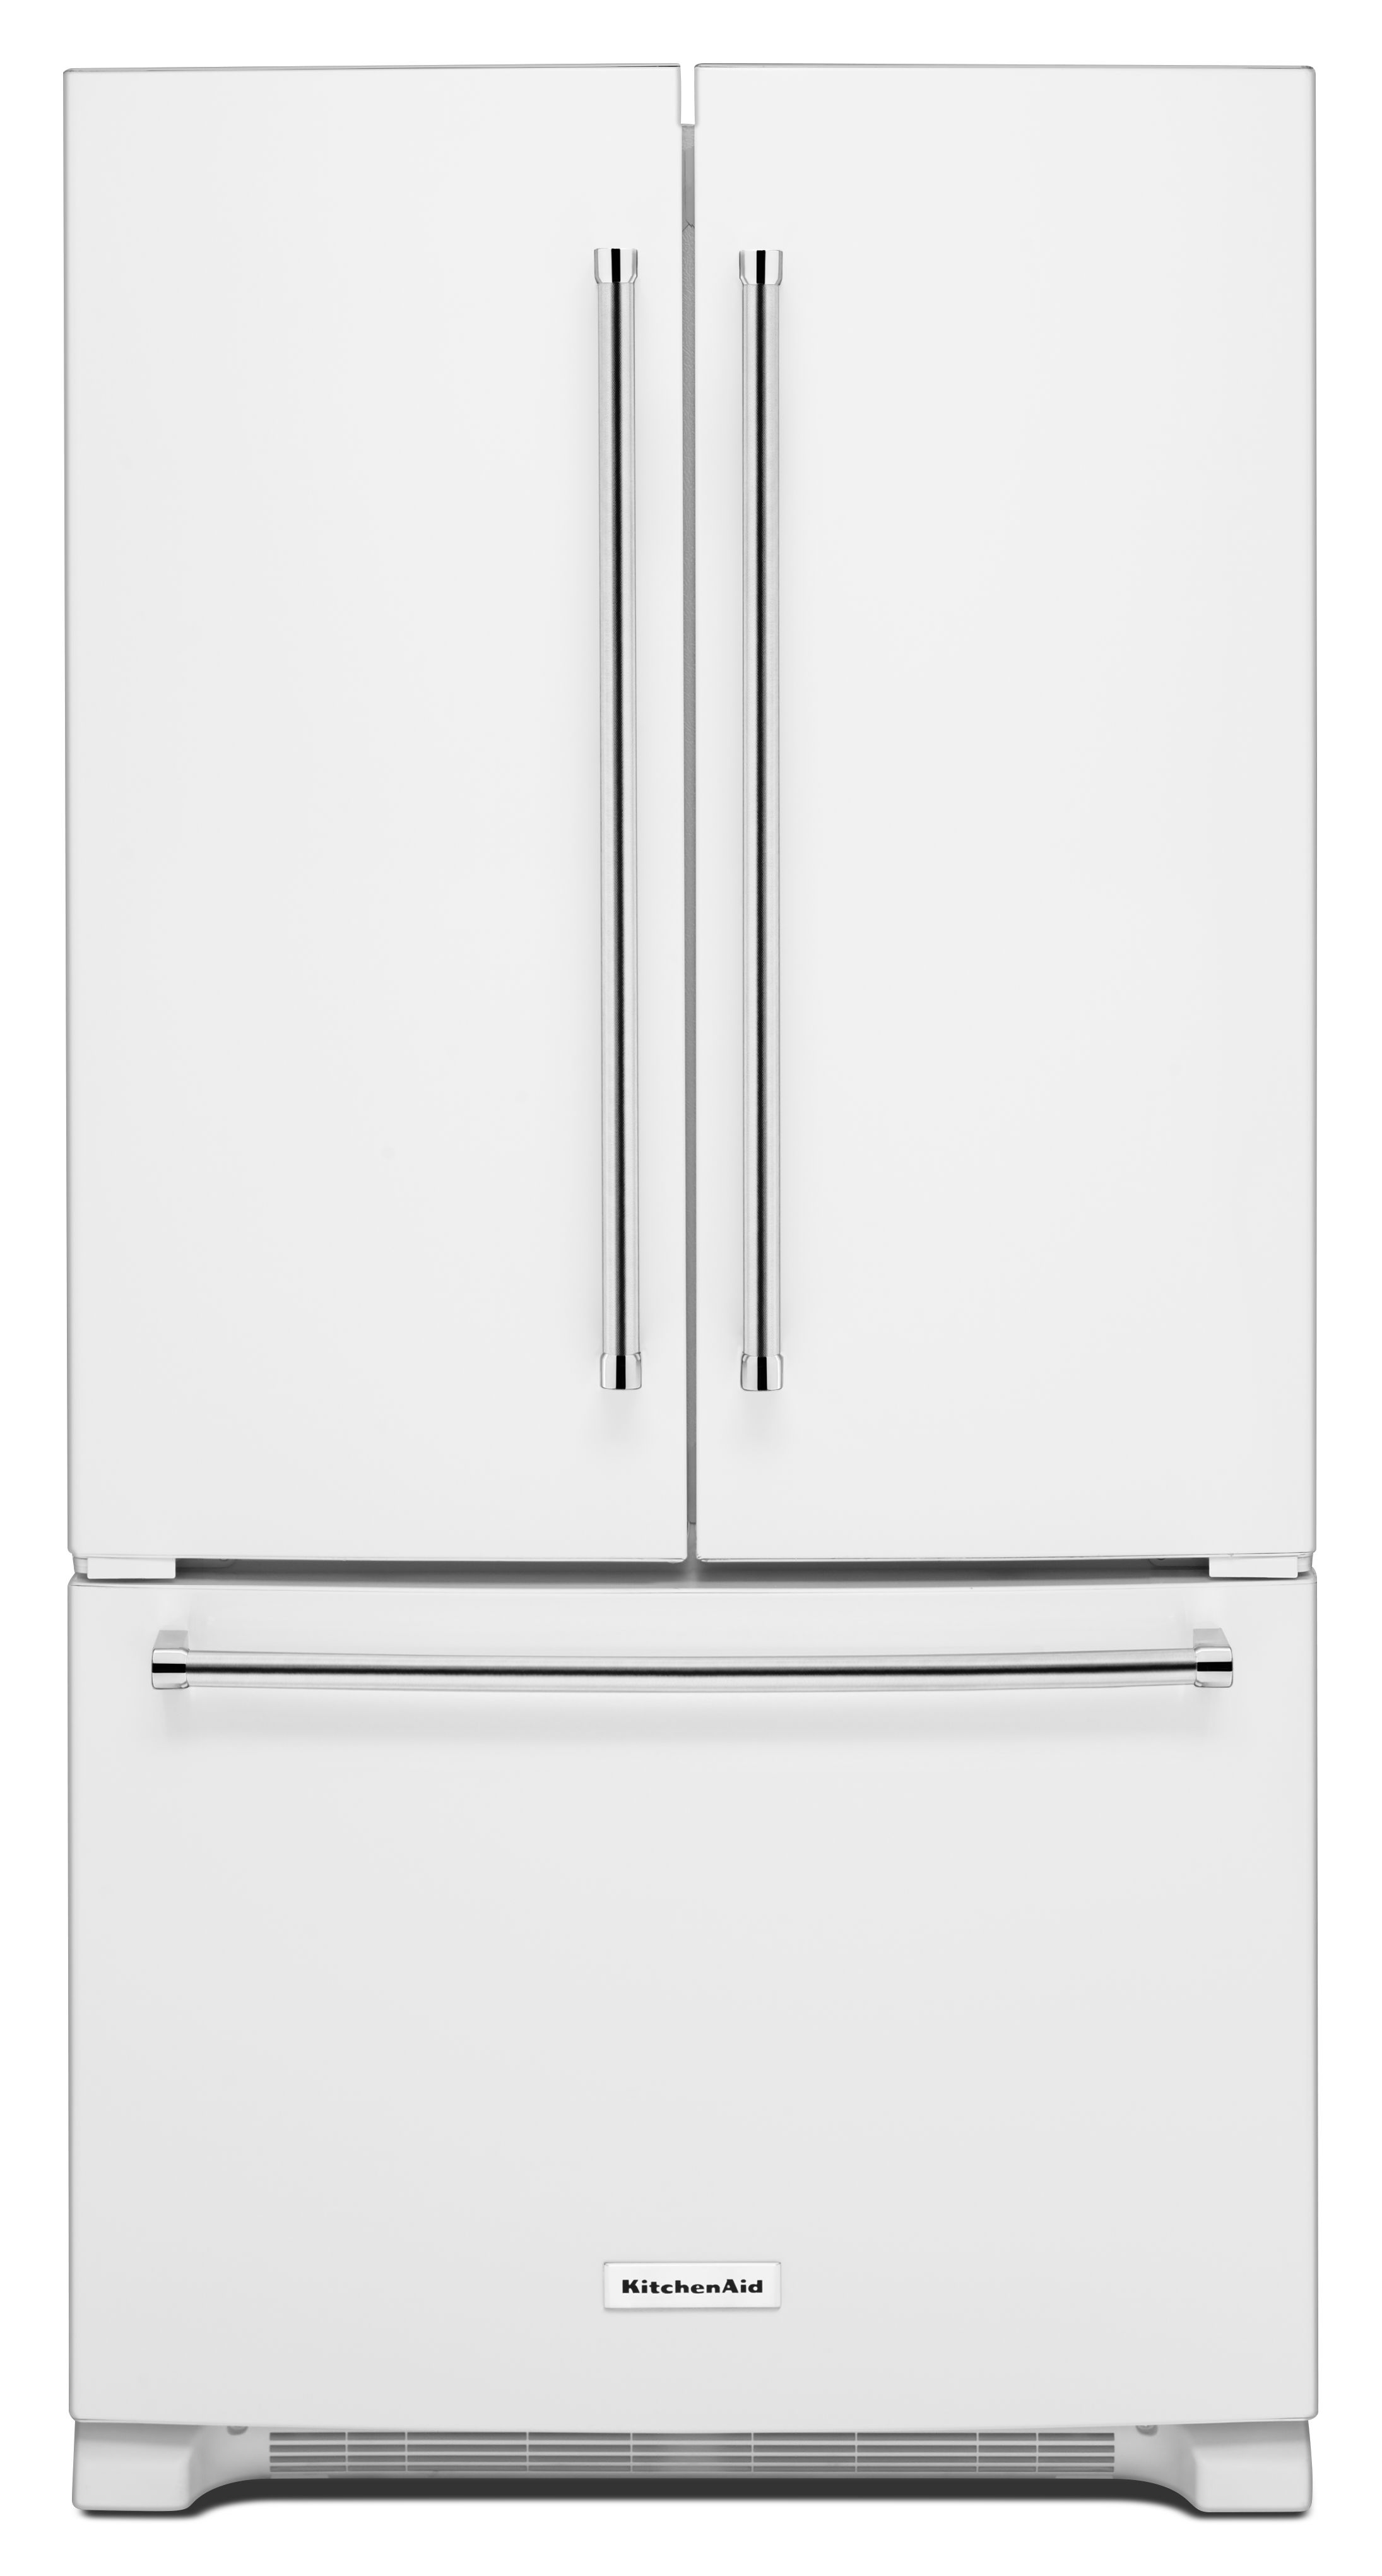 of pleasing section traditional is aside the refrigerators drawers from refrigerator review goes in kitchenaid unusual very drawer reviewed main s door prestigious partment